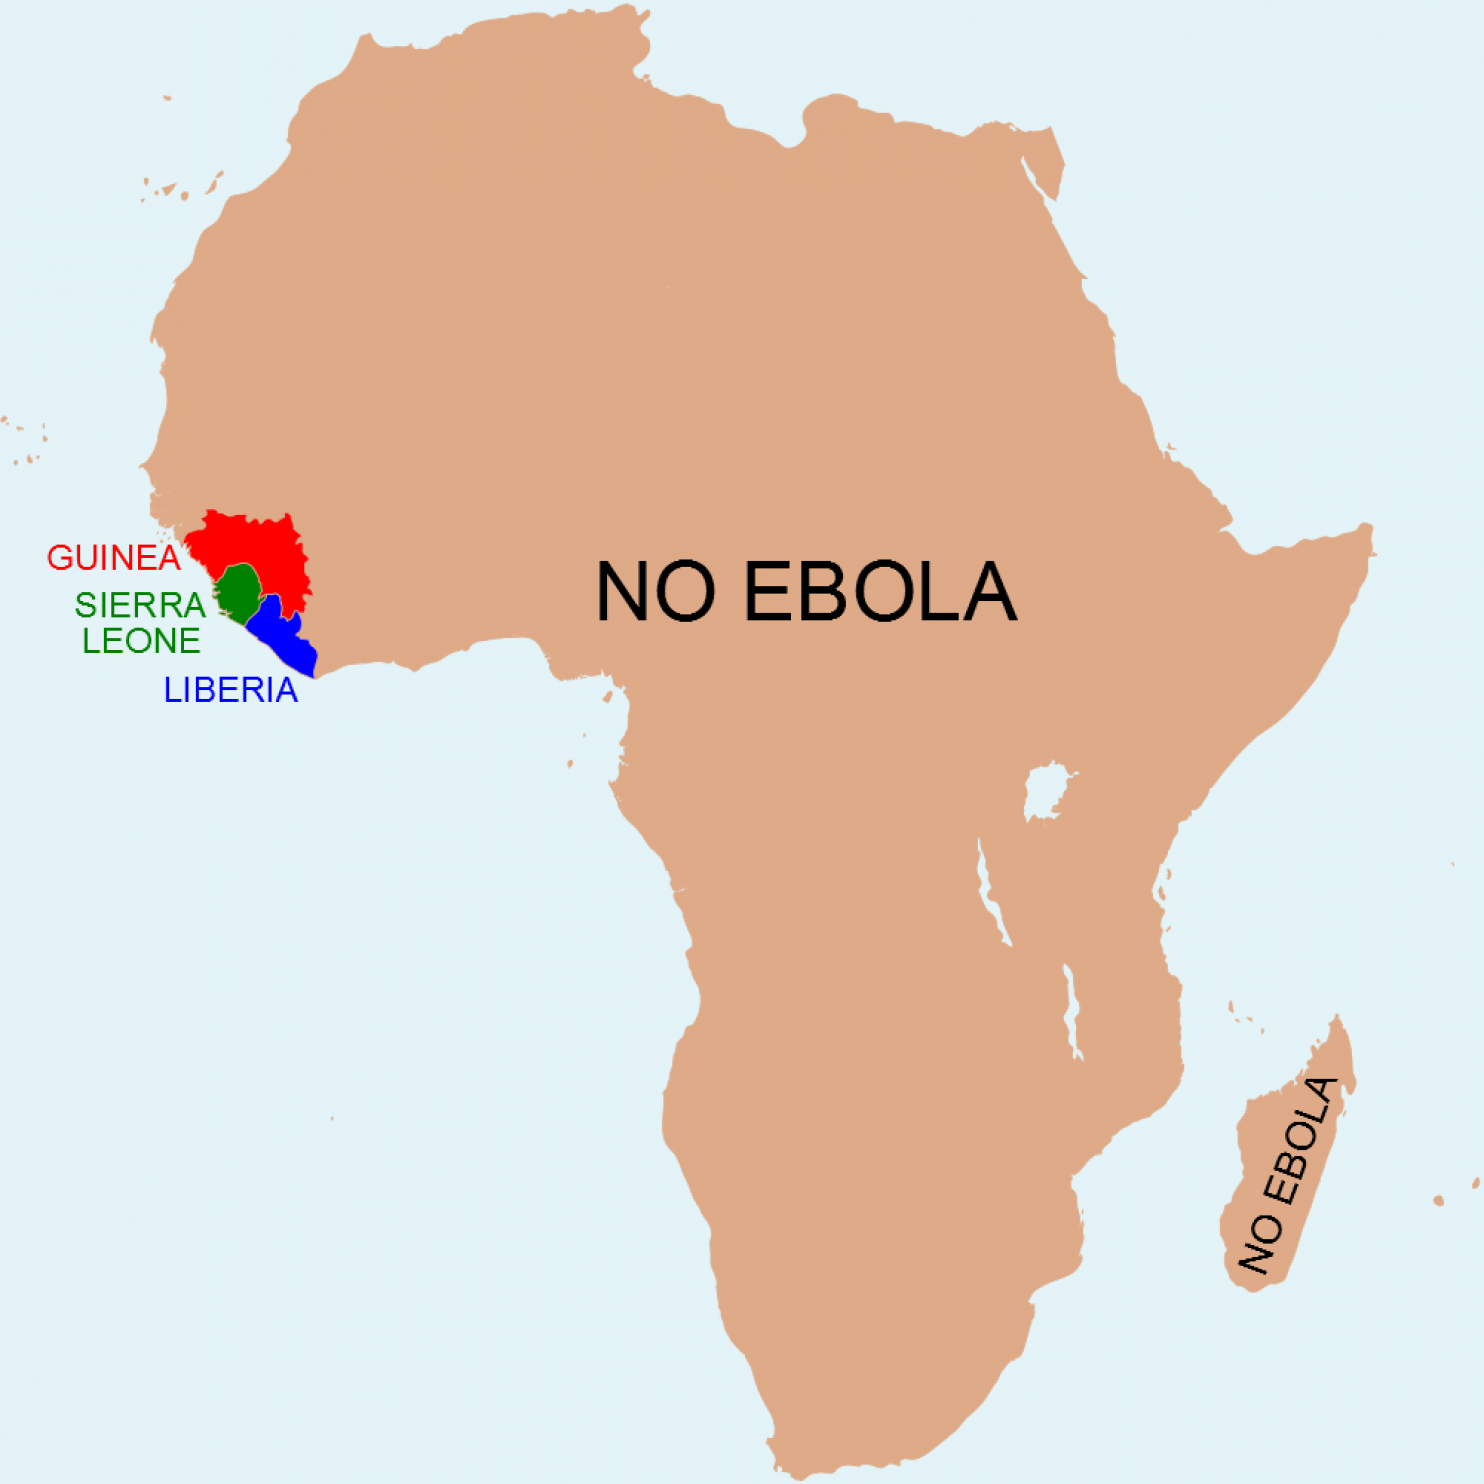 World Map Without Africa Map: The Africa without Ebola | Ebola, Africa, Africa map